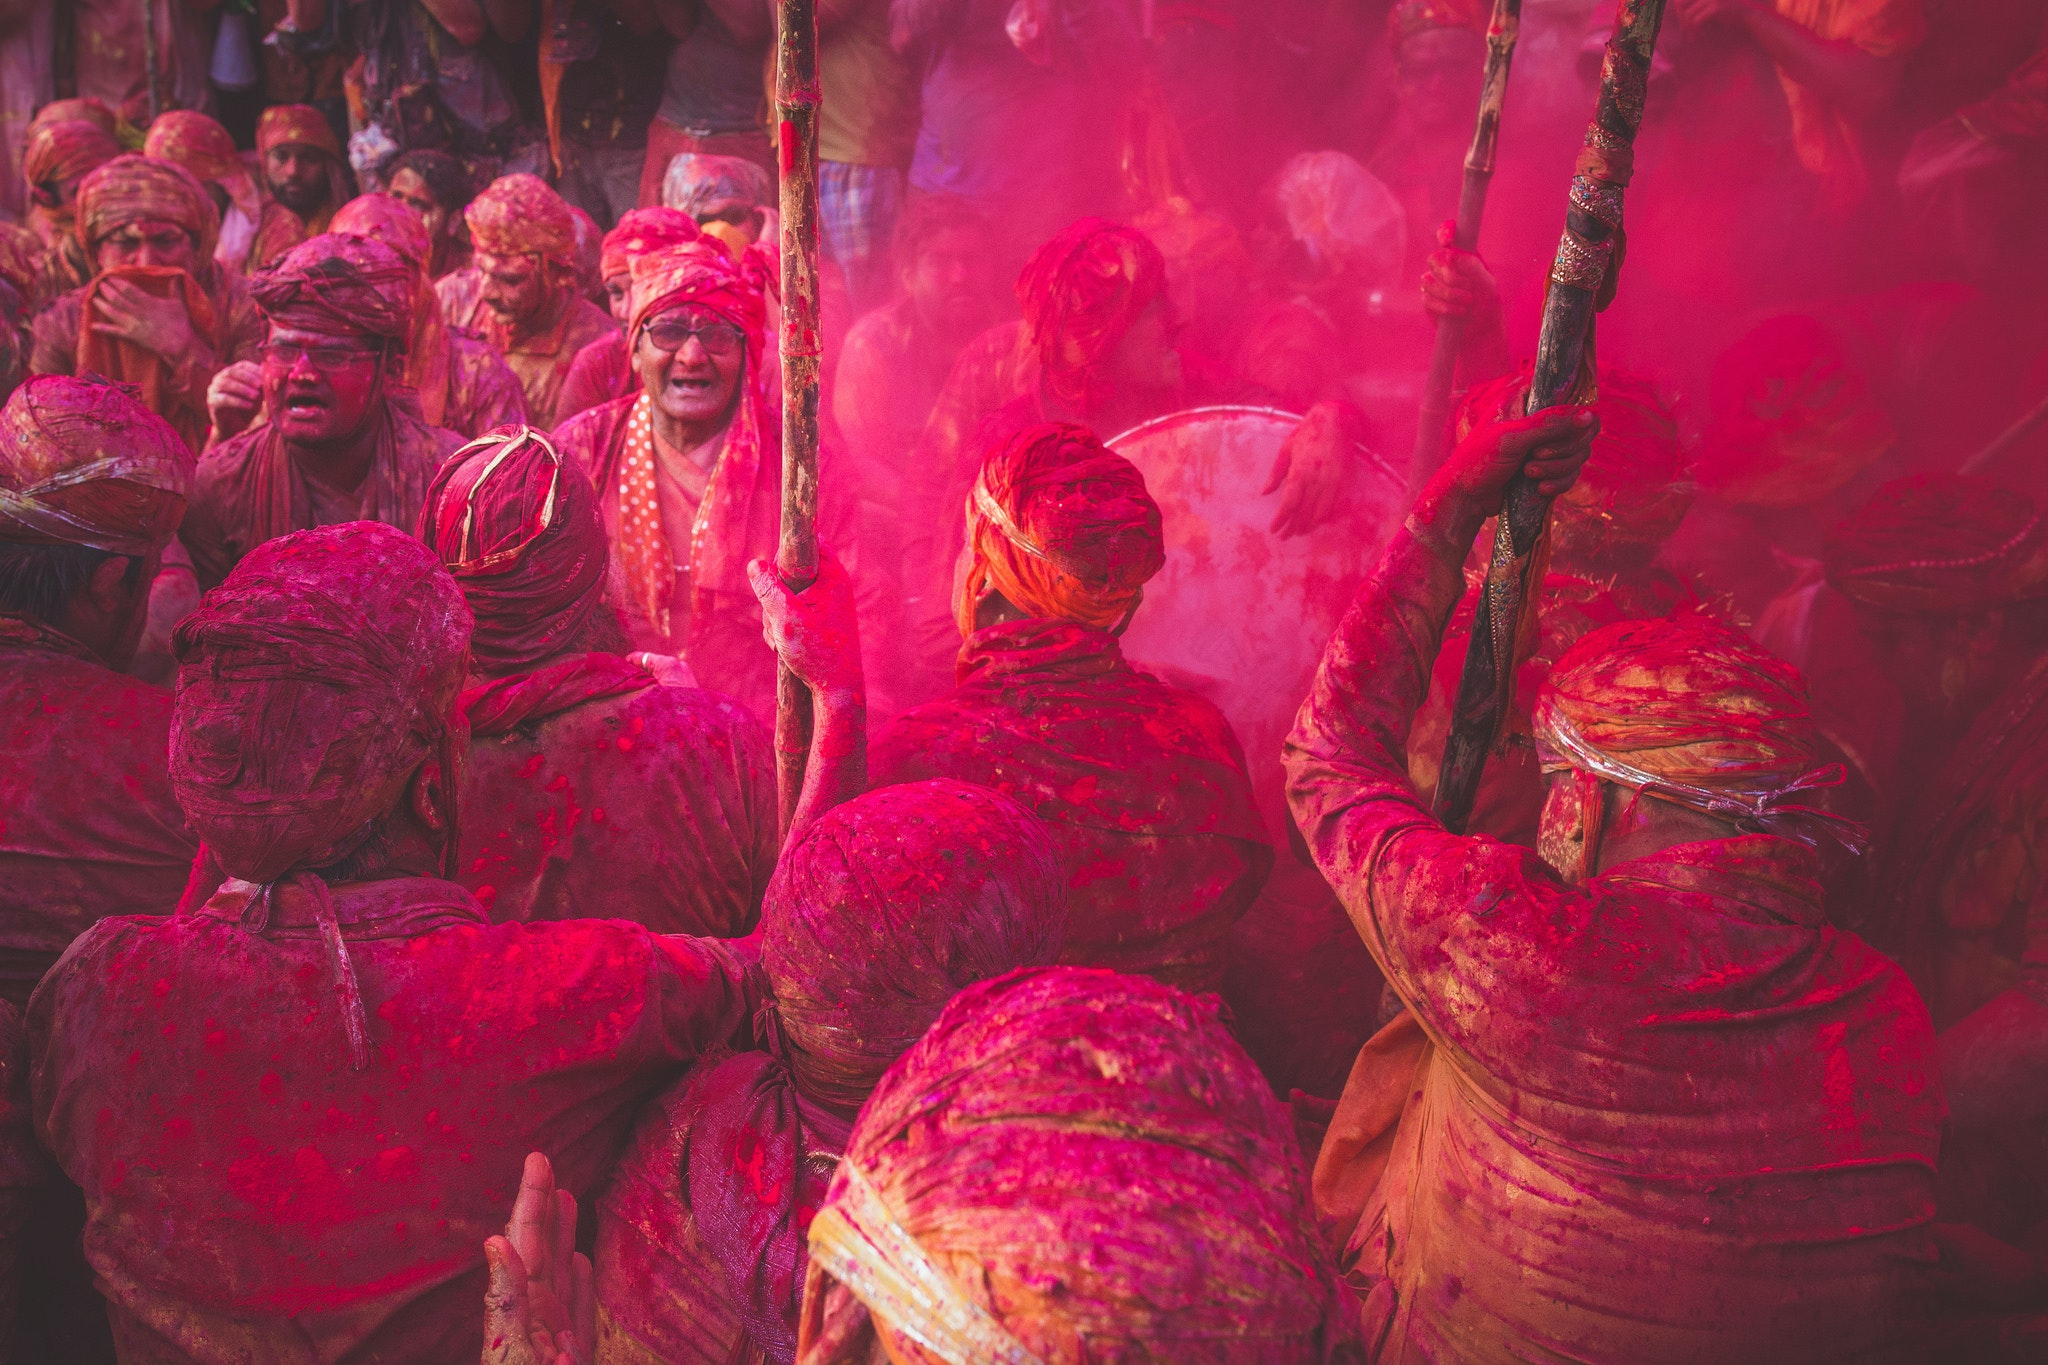 The town of Barsana, in northern India, explodes with color and tradition during Holi.